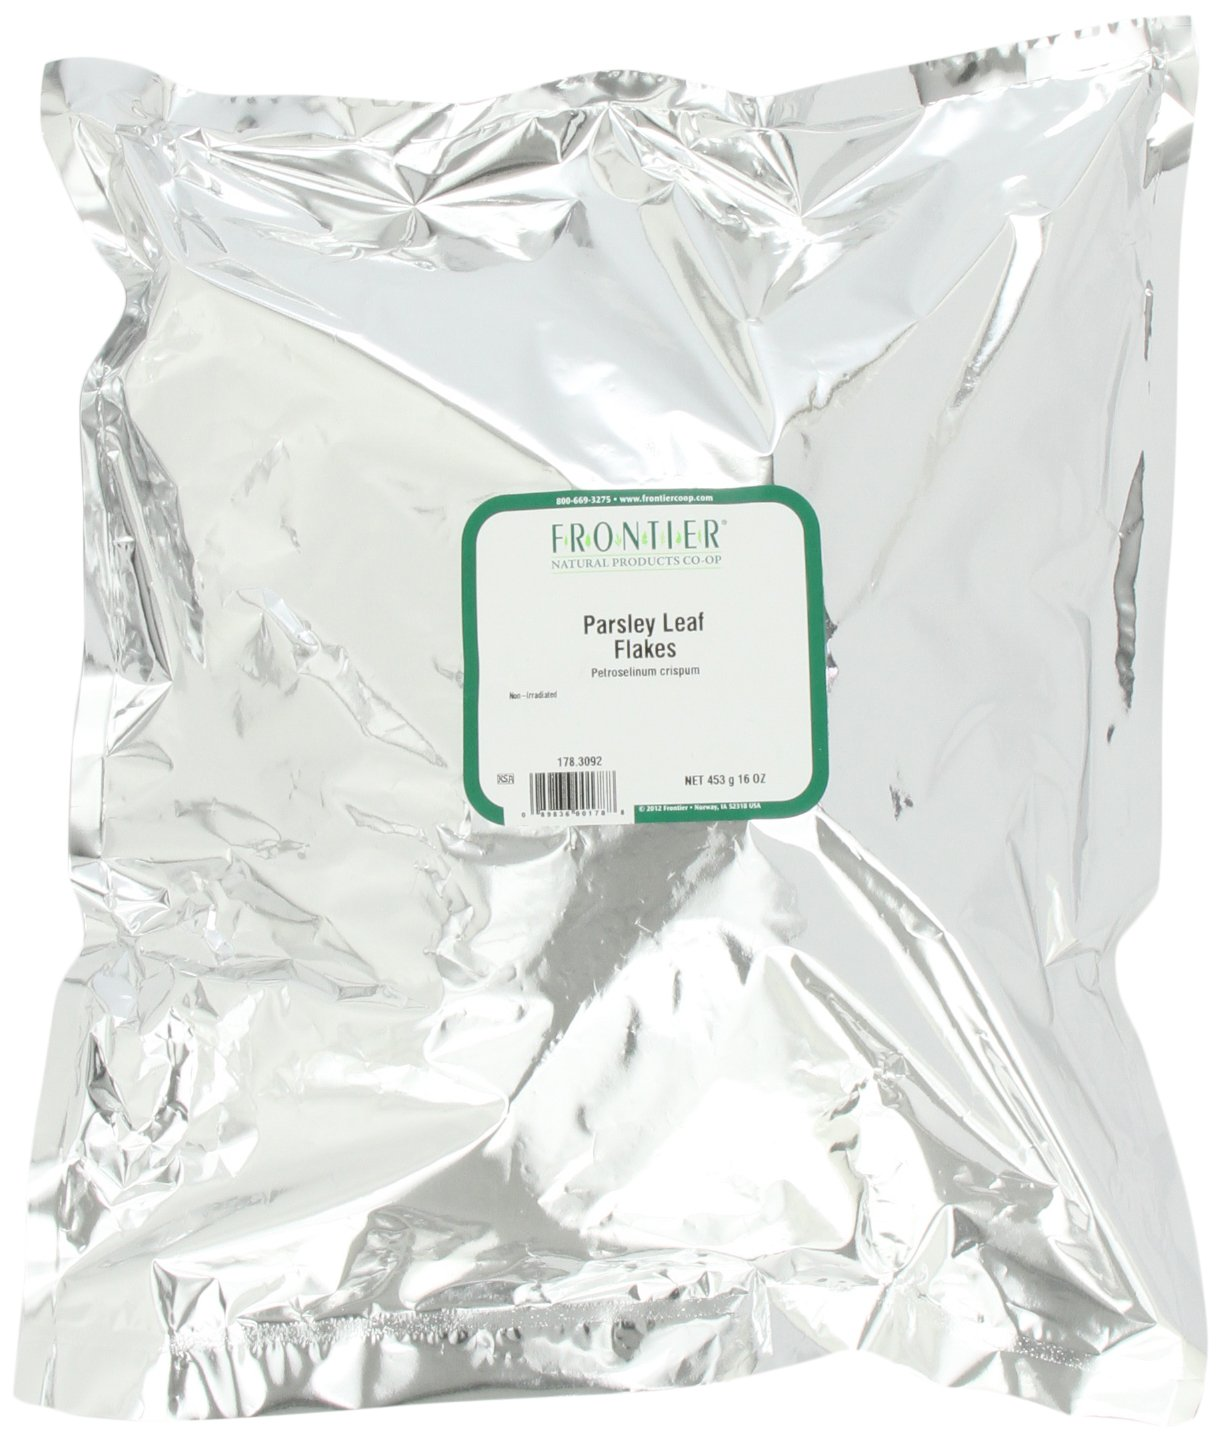 Frontier Parsley Leaf Flakes, 16 Ounce Bag